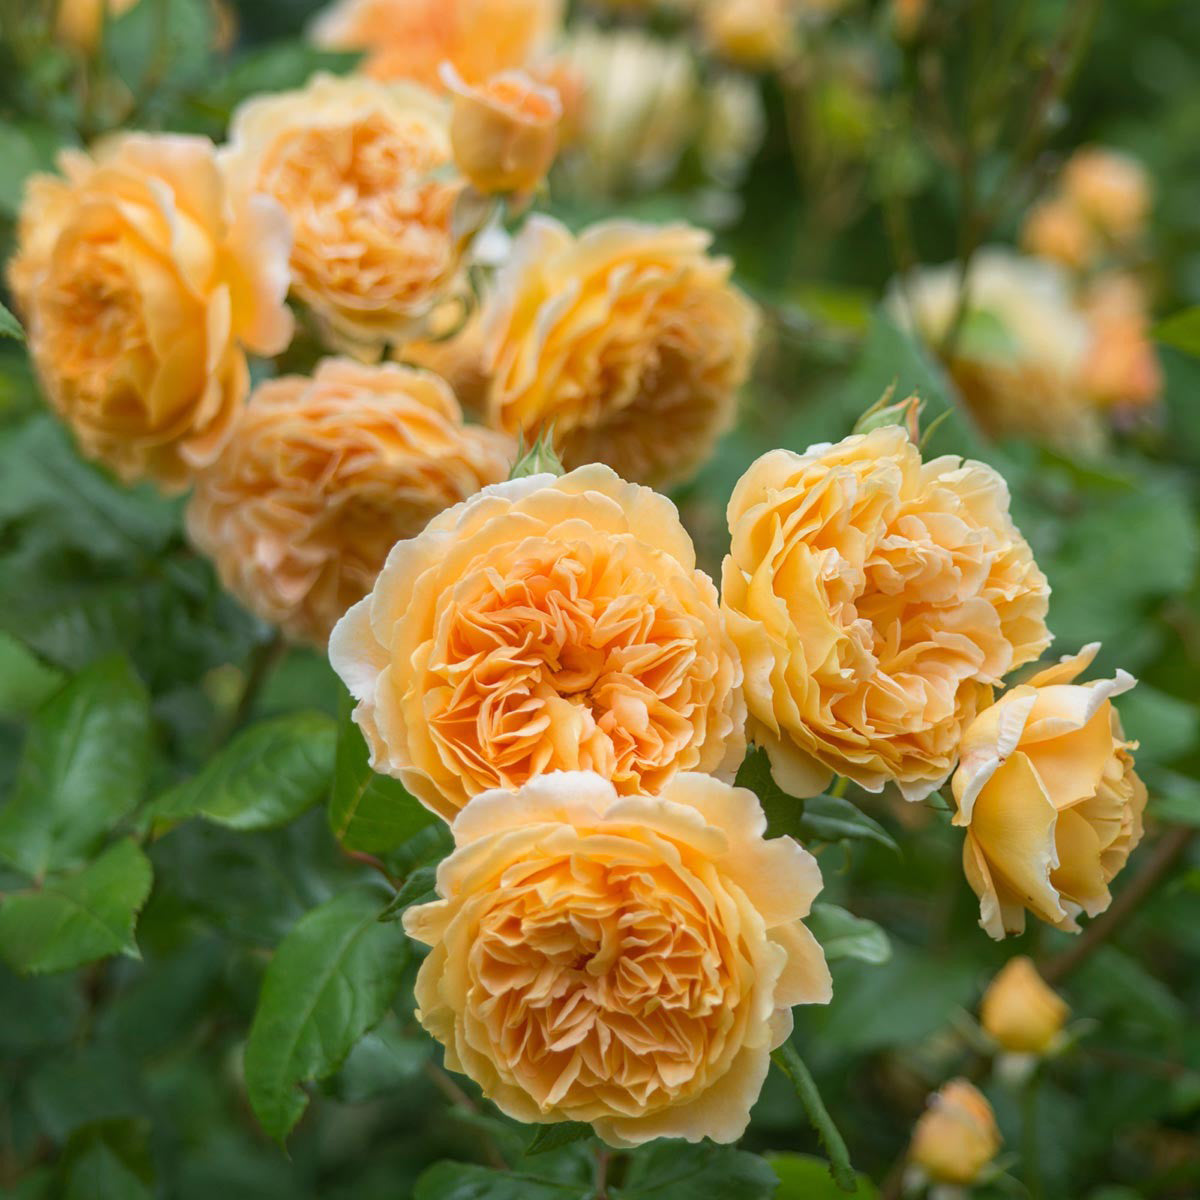 Rose Crown Princess Margareta Climber 5 gal David Austin